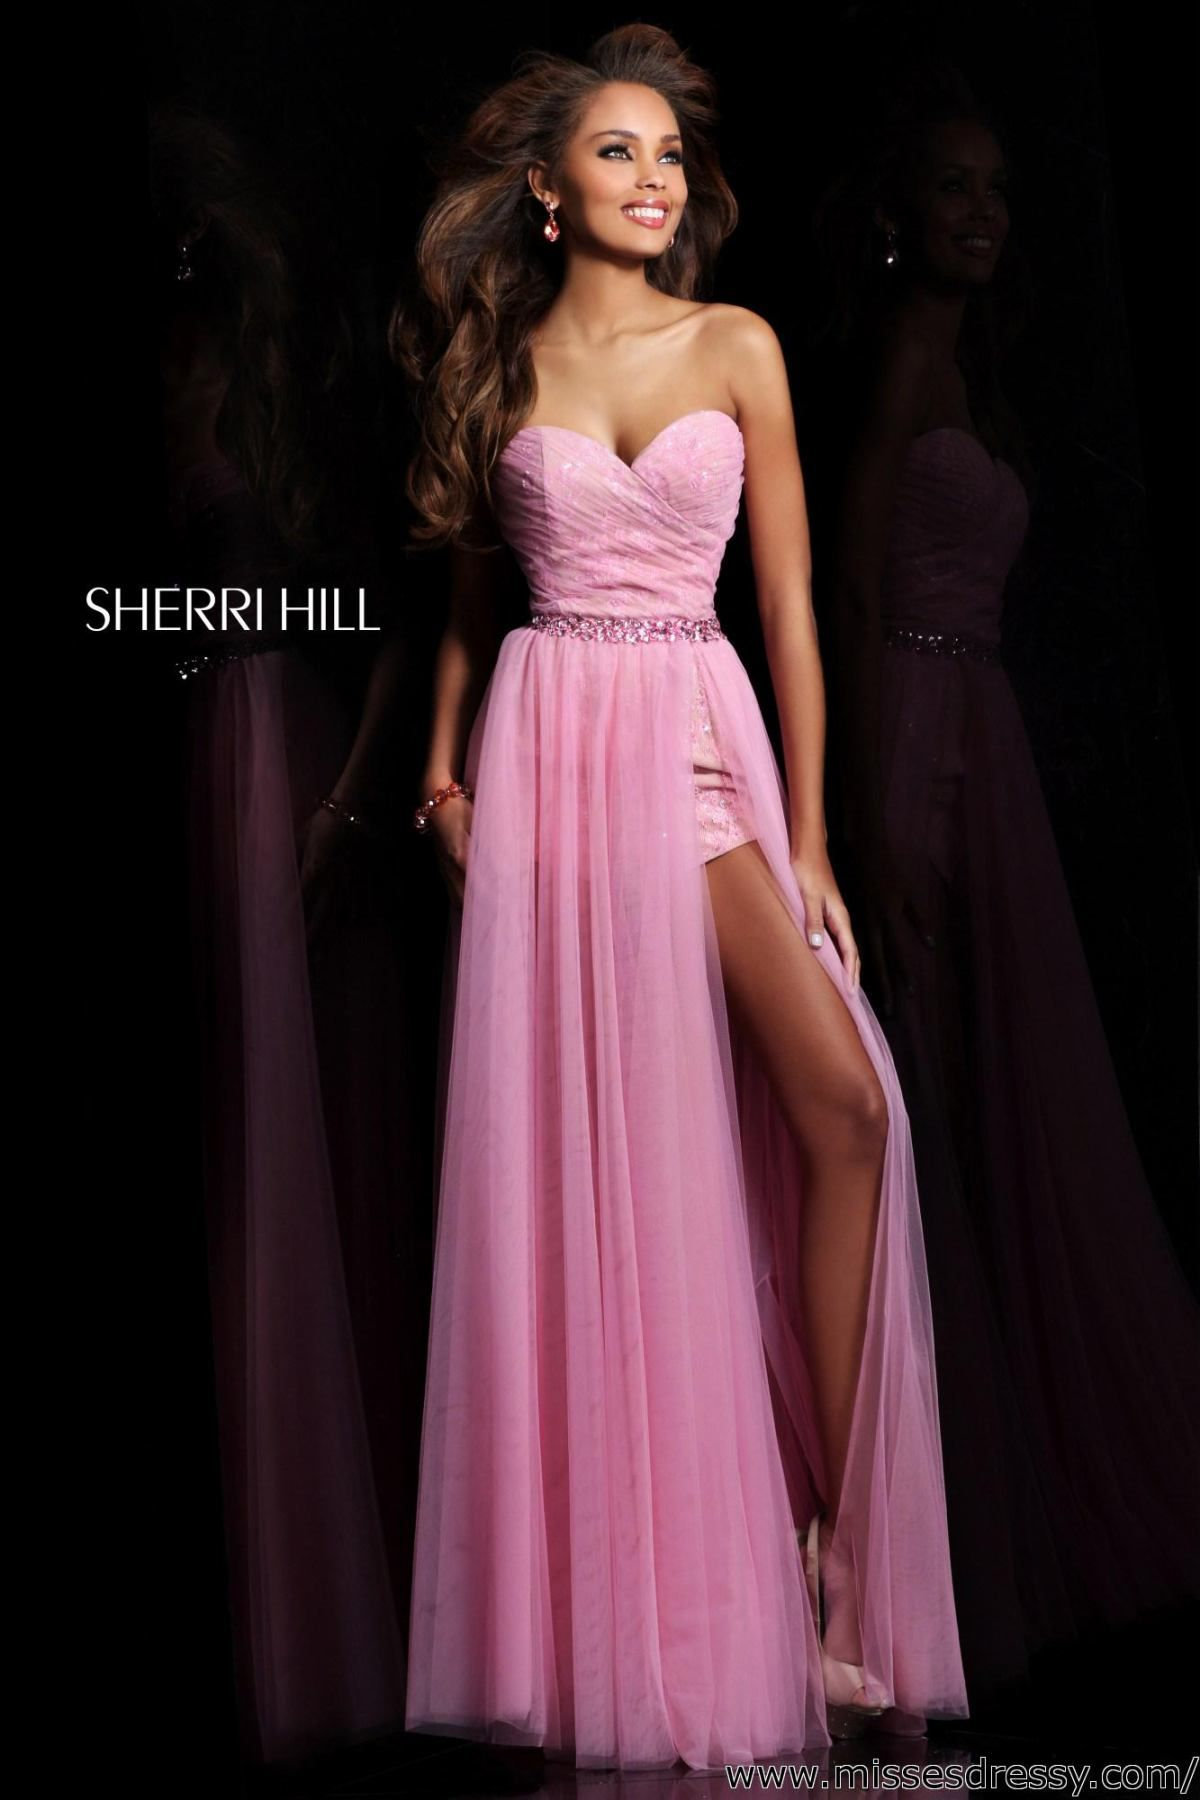 Sherri hill dress available at missesdressy prom